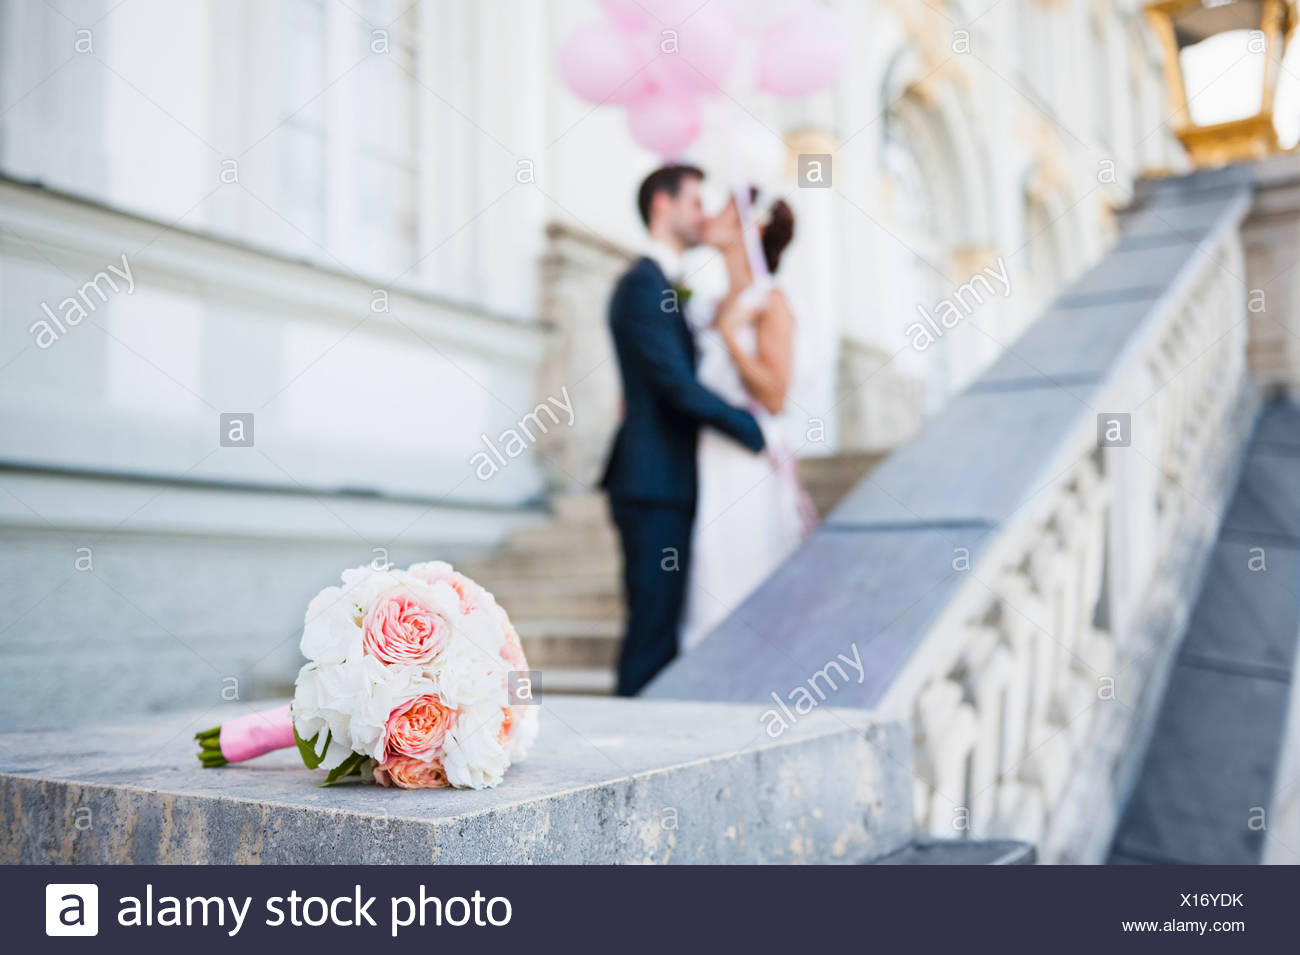 Mid adult bride and groom kissing on stairway - Stock Image